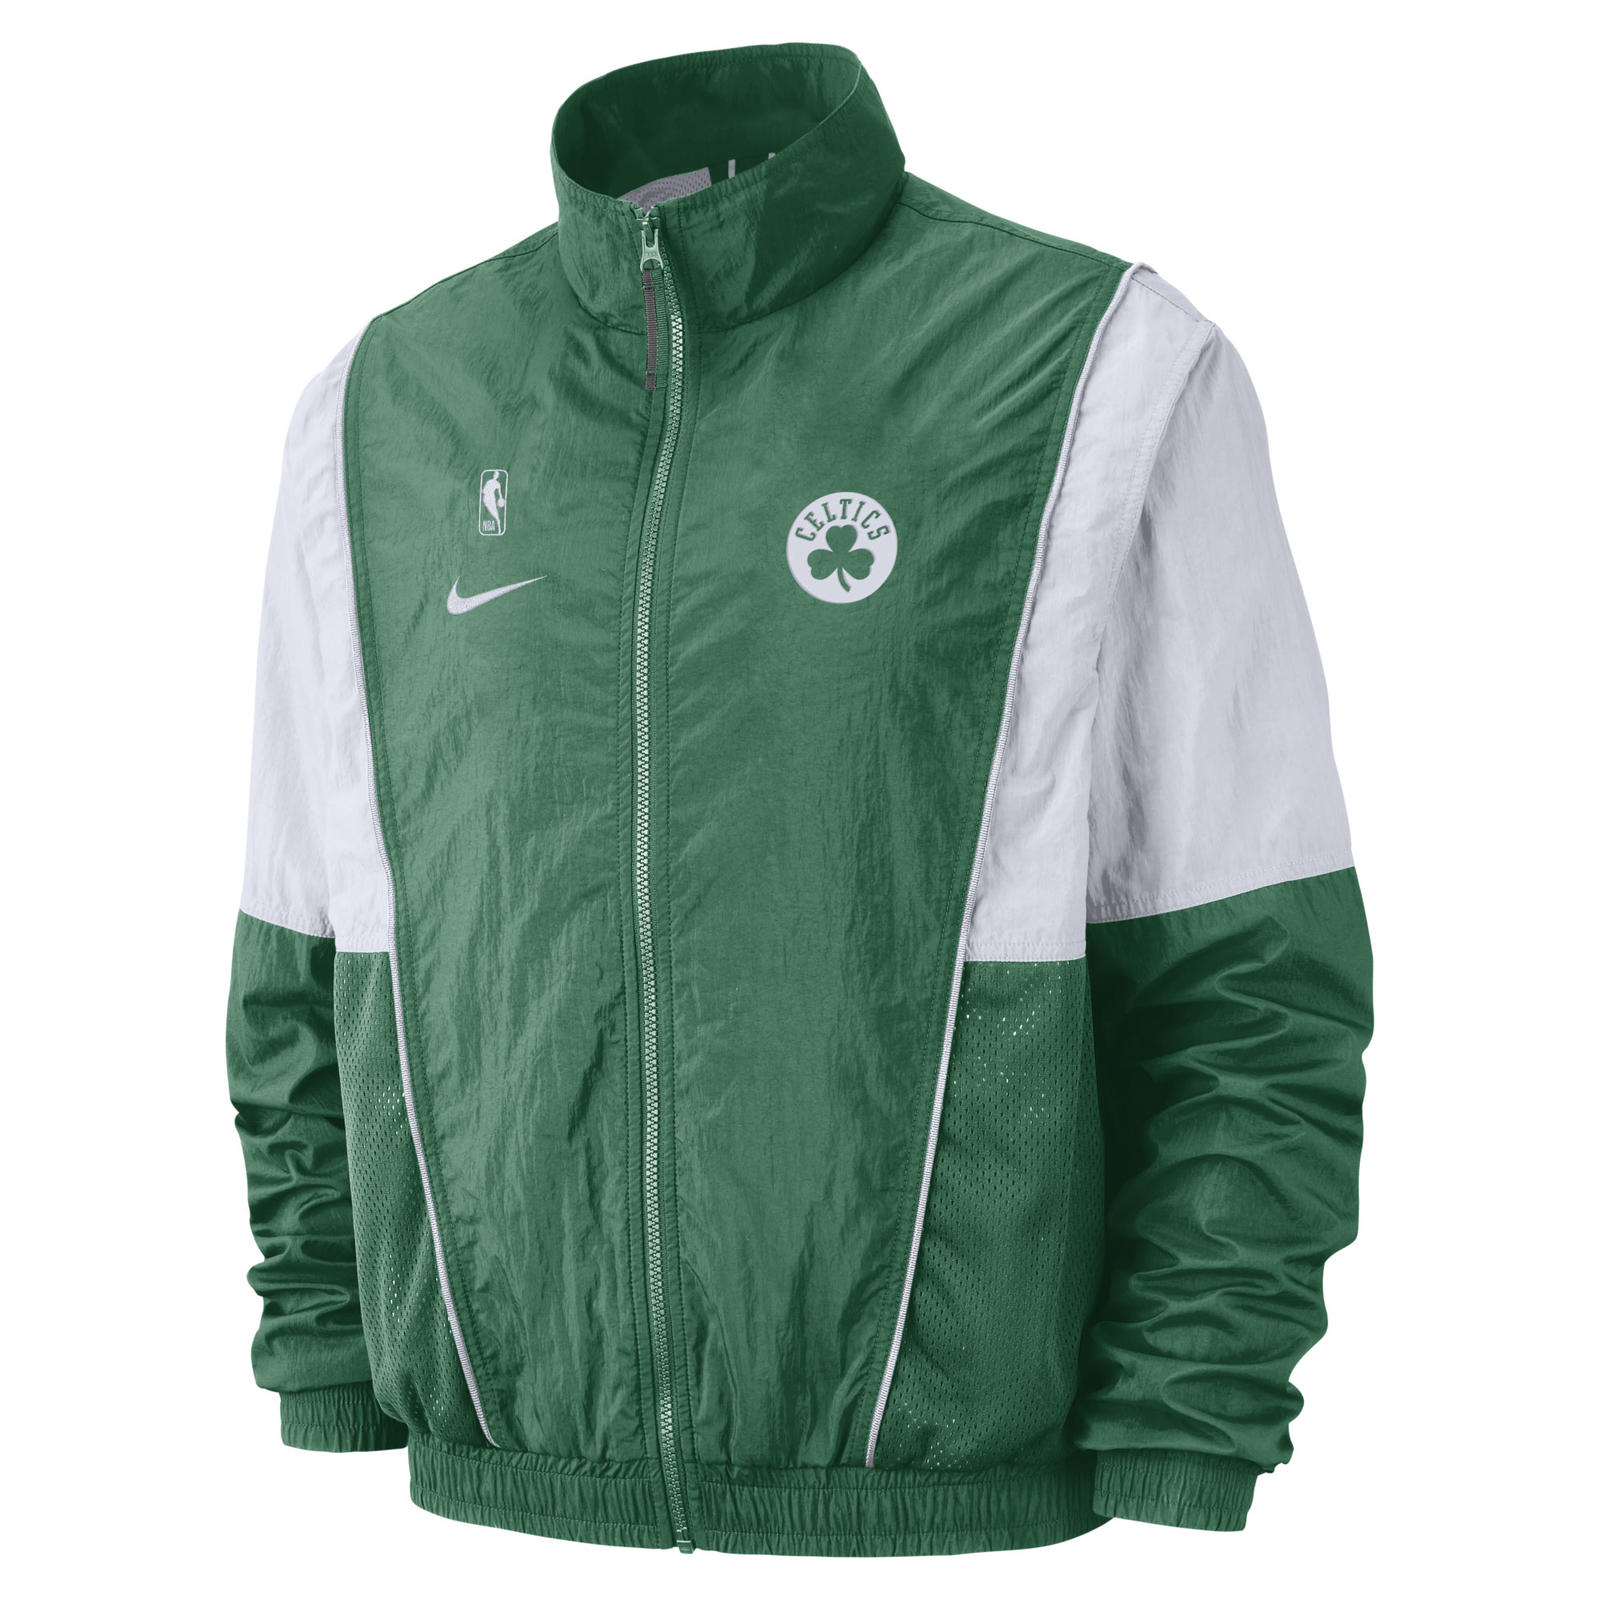 Nba celticstracksuit av6703 312 a re square 1600